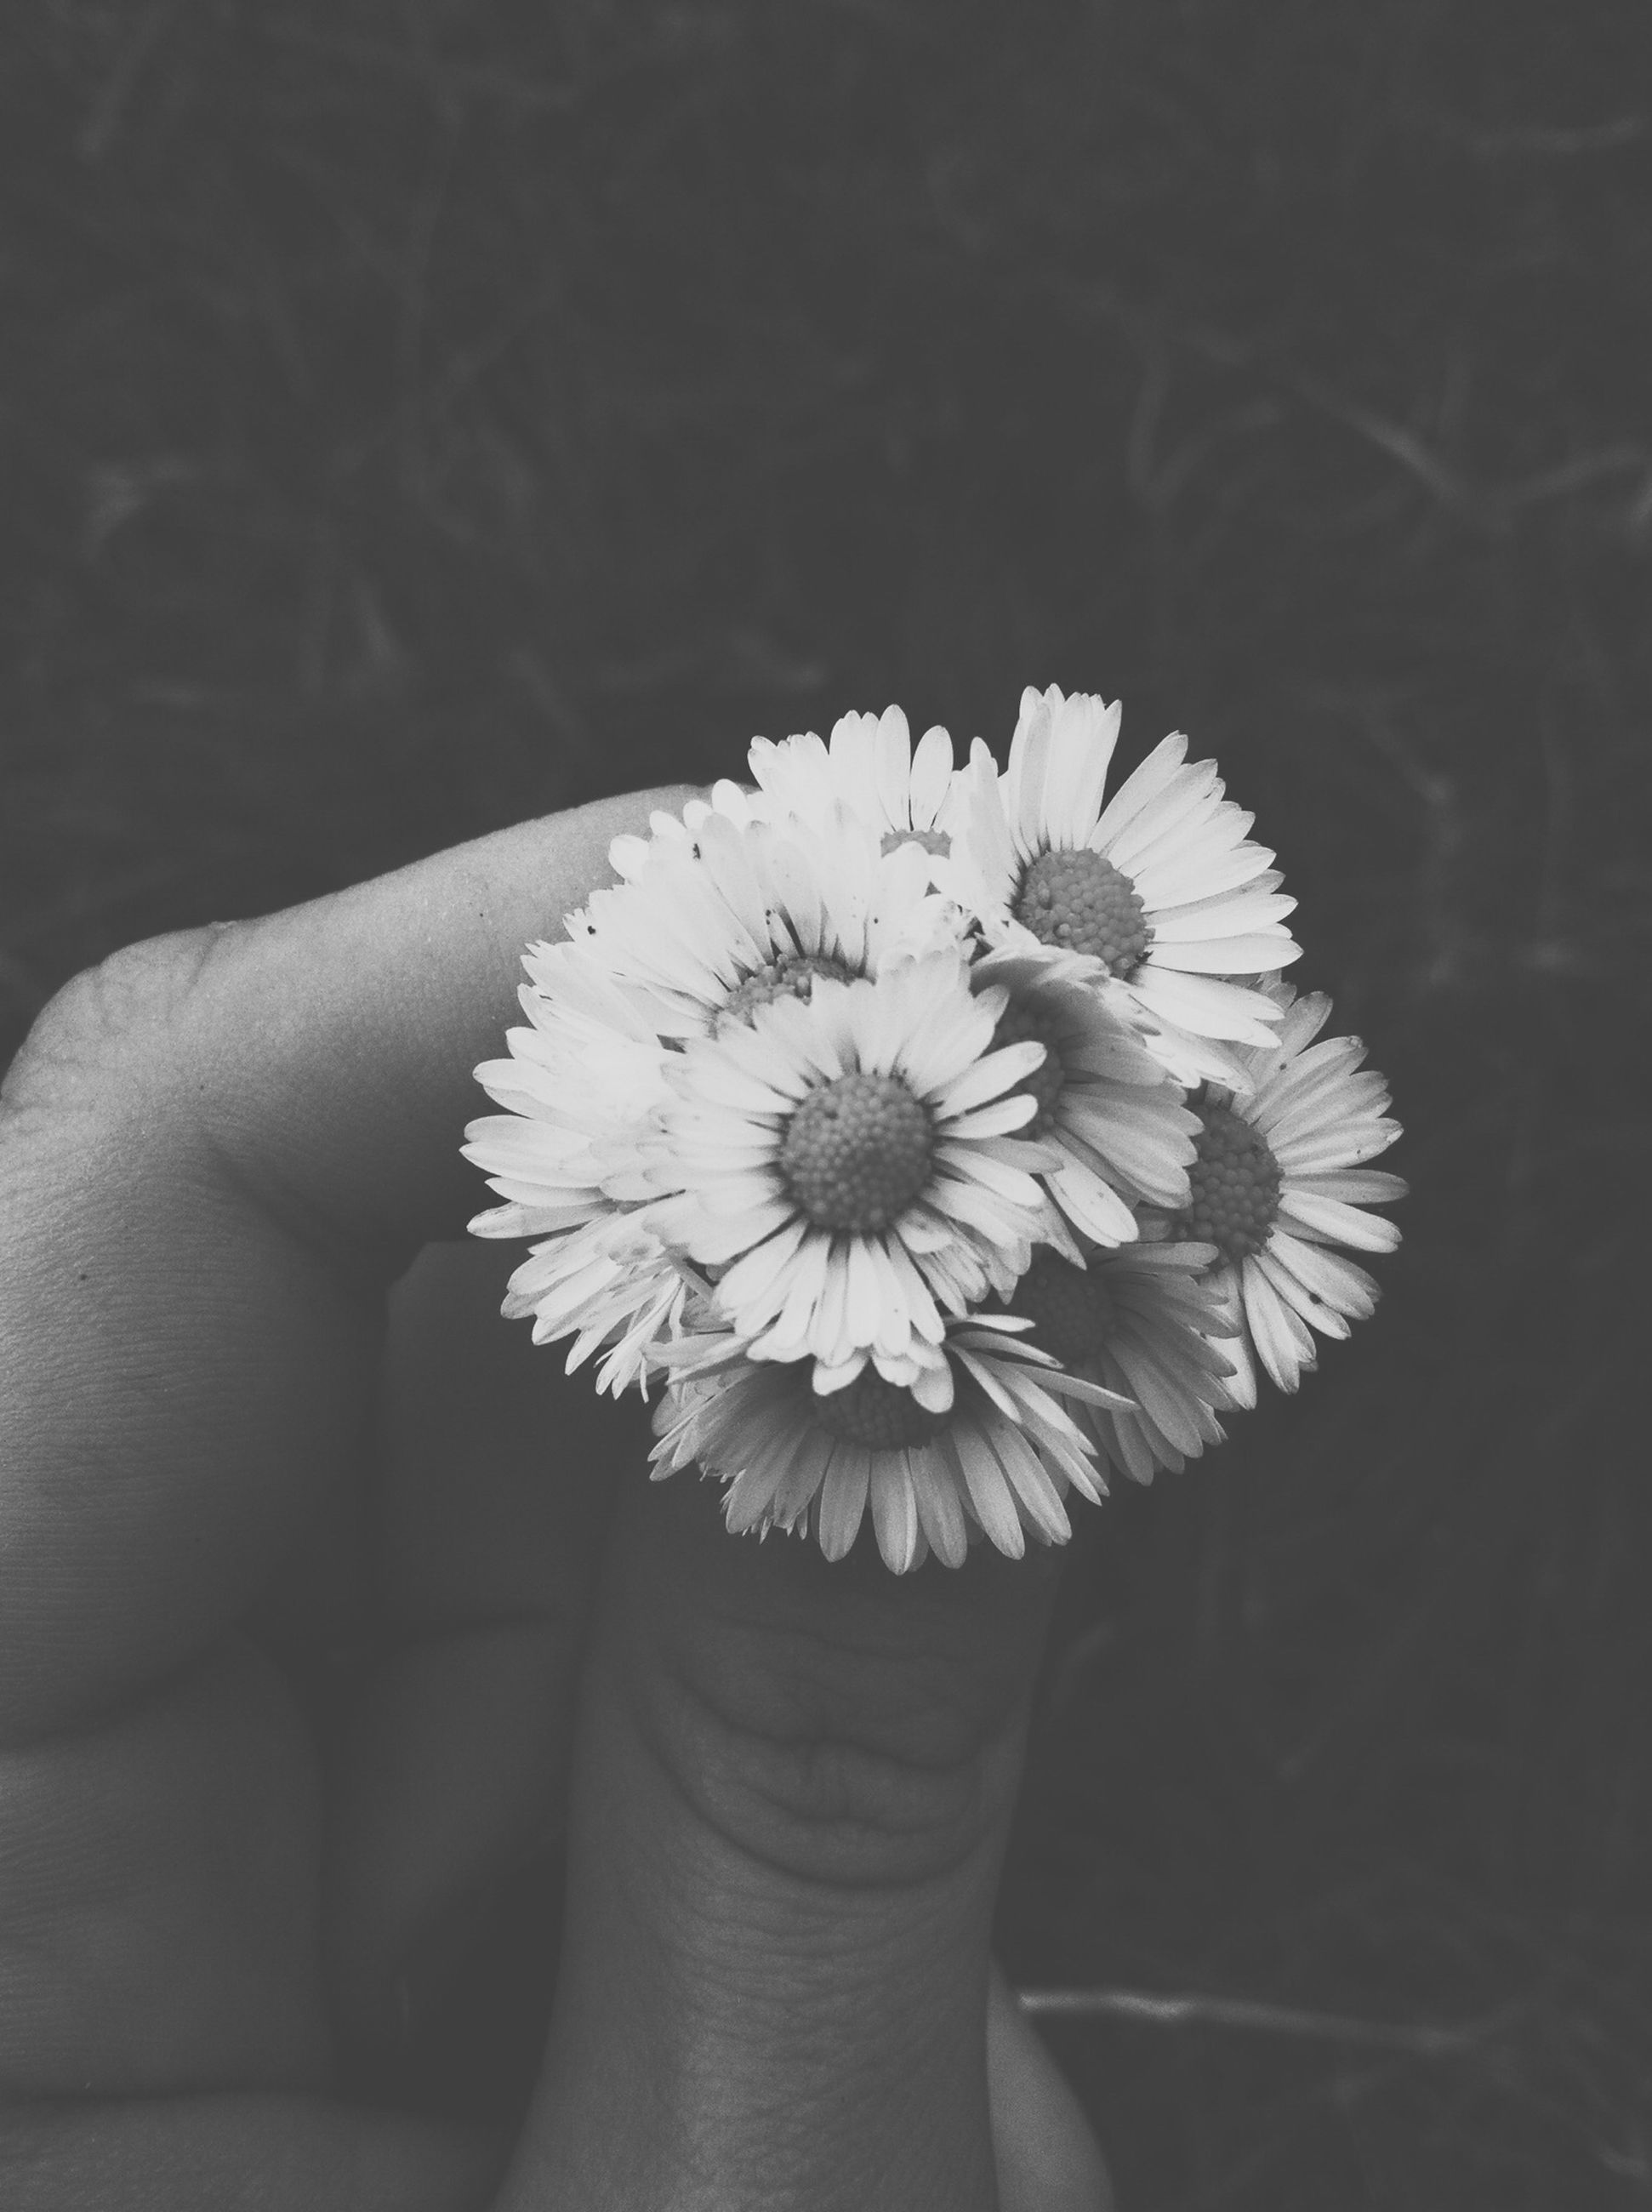 person, flower, holding, fragility, flower head, petal, freshness, part of, human finger, single flower, personal perspective, cropped, white color, close-up, unrecognizable person, beauty in nature, daisy